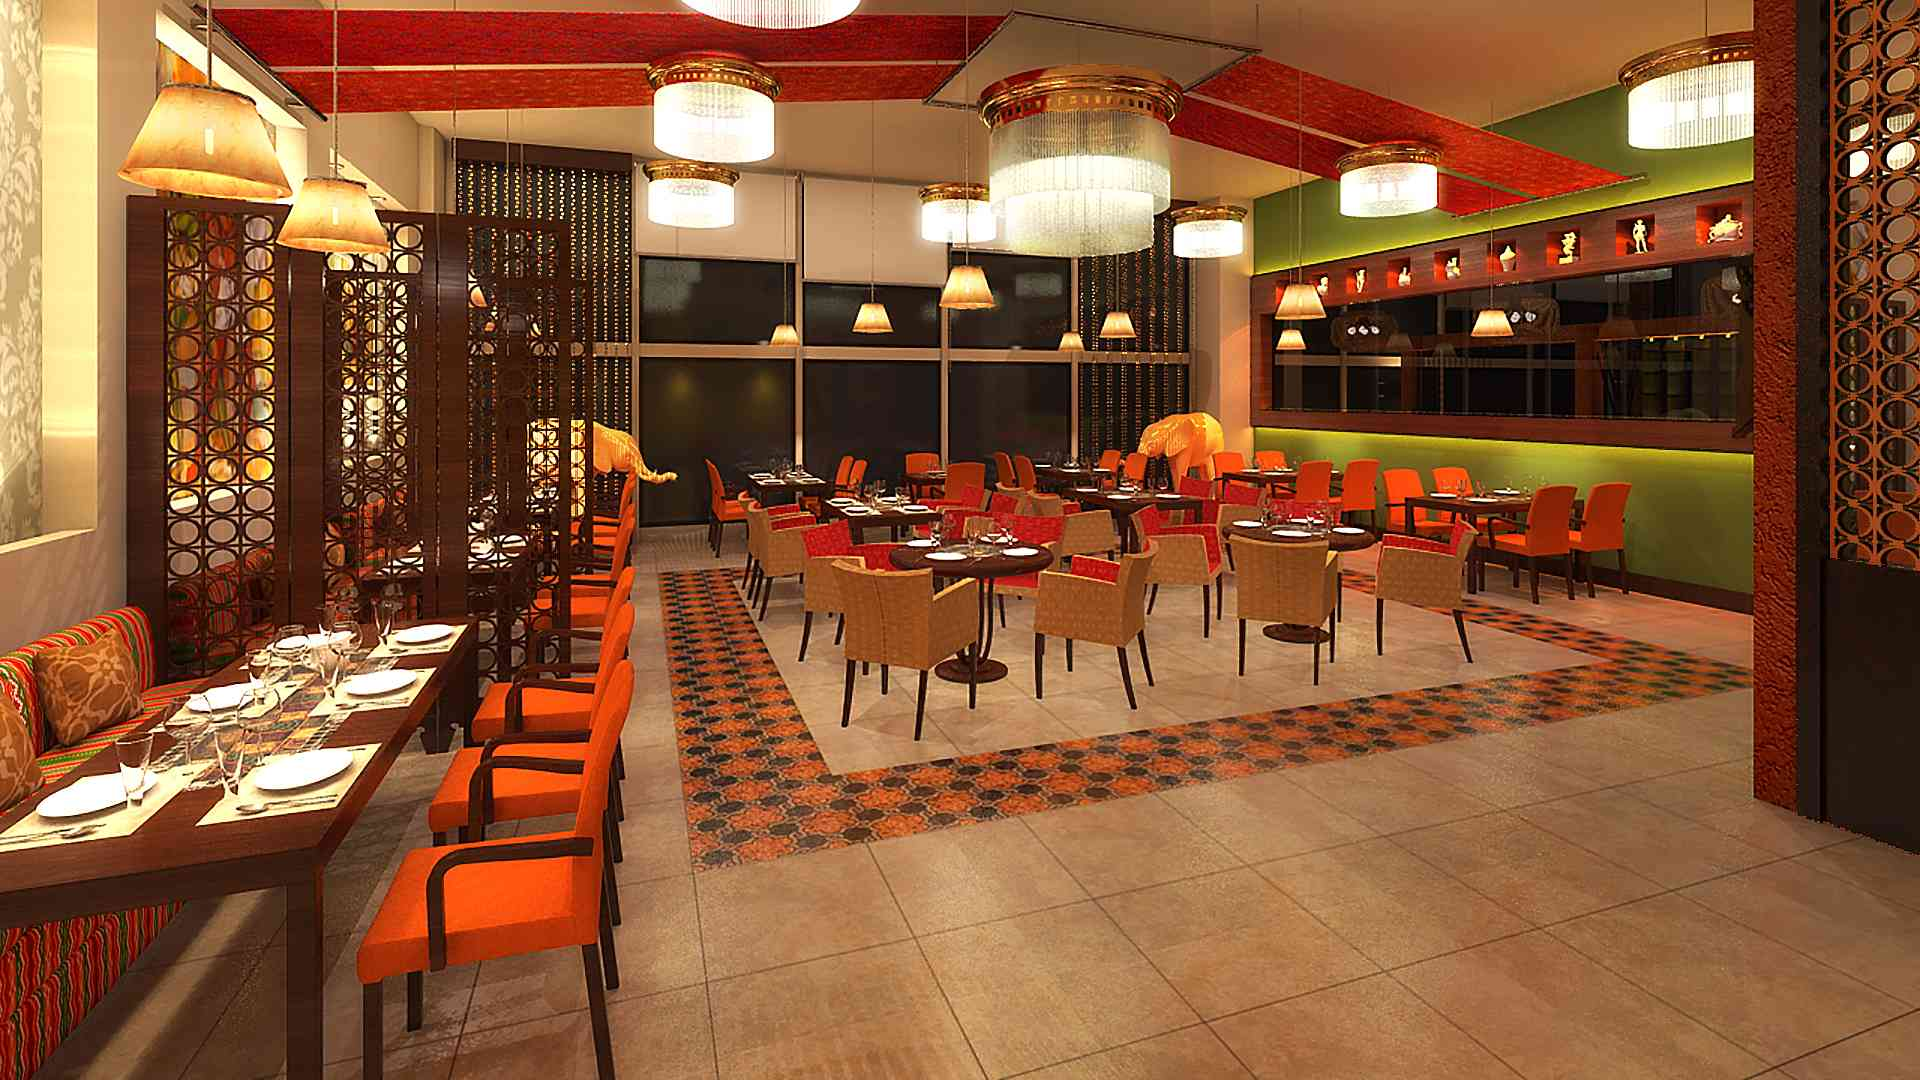 Restaurant Interior Design Ideas Images Bar Designs